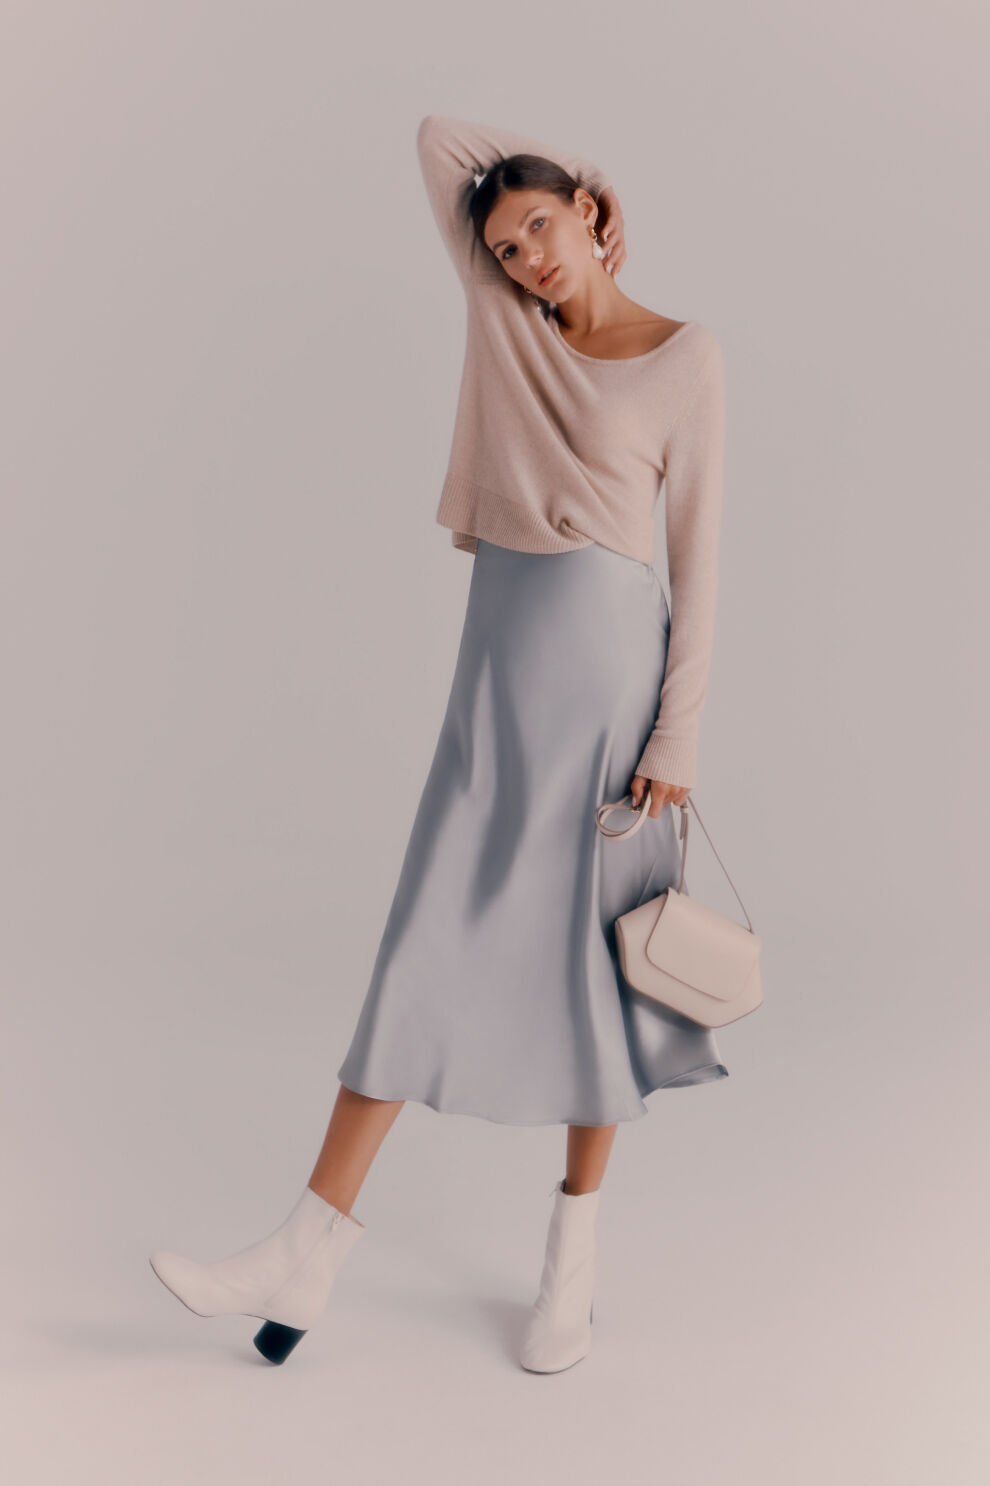 Cuyana Single Origin Cashmere Scoop Neck Sweater worn with Charmeuse Midi Skirt, Mini Hoop Earrings and Baroque Pearl Embellishment, and Hexagon Crossbody